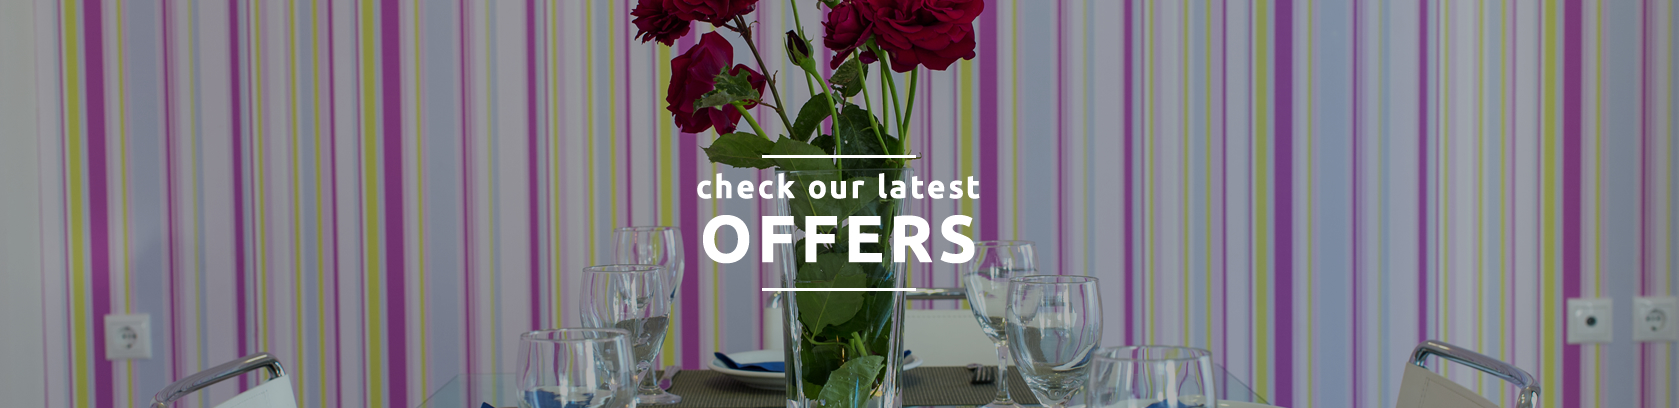 check out our latest offers